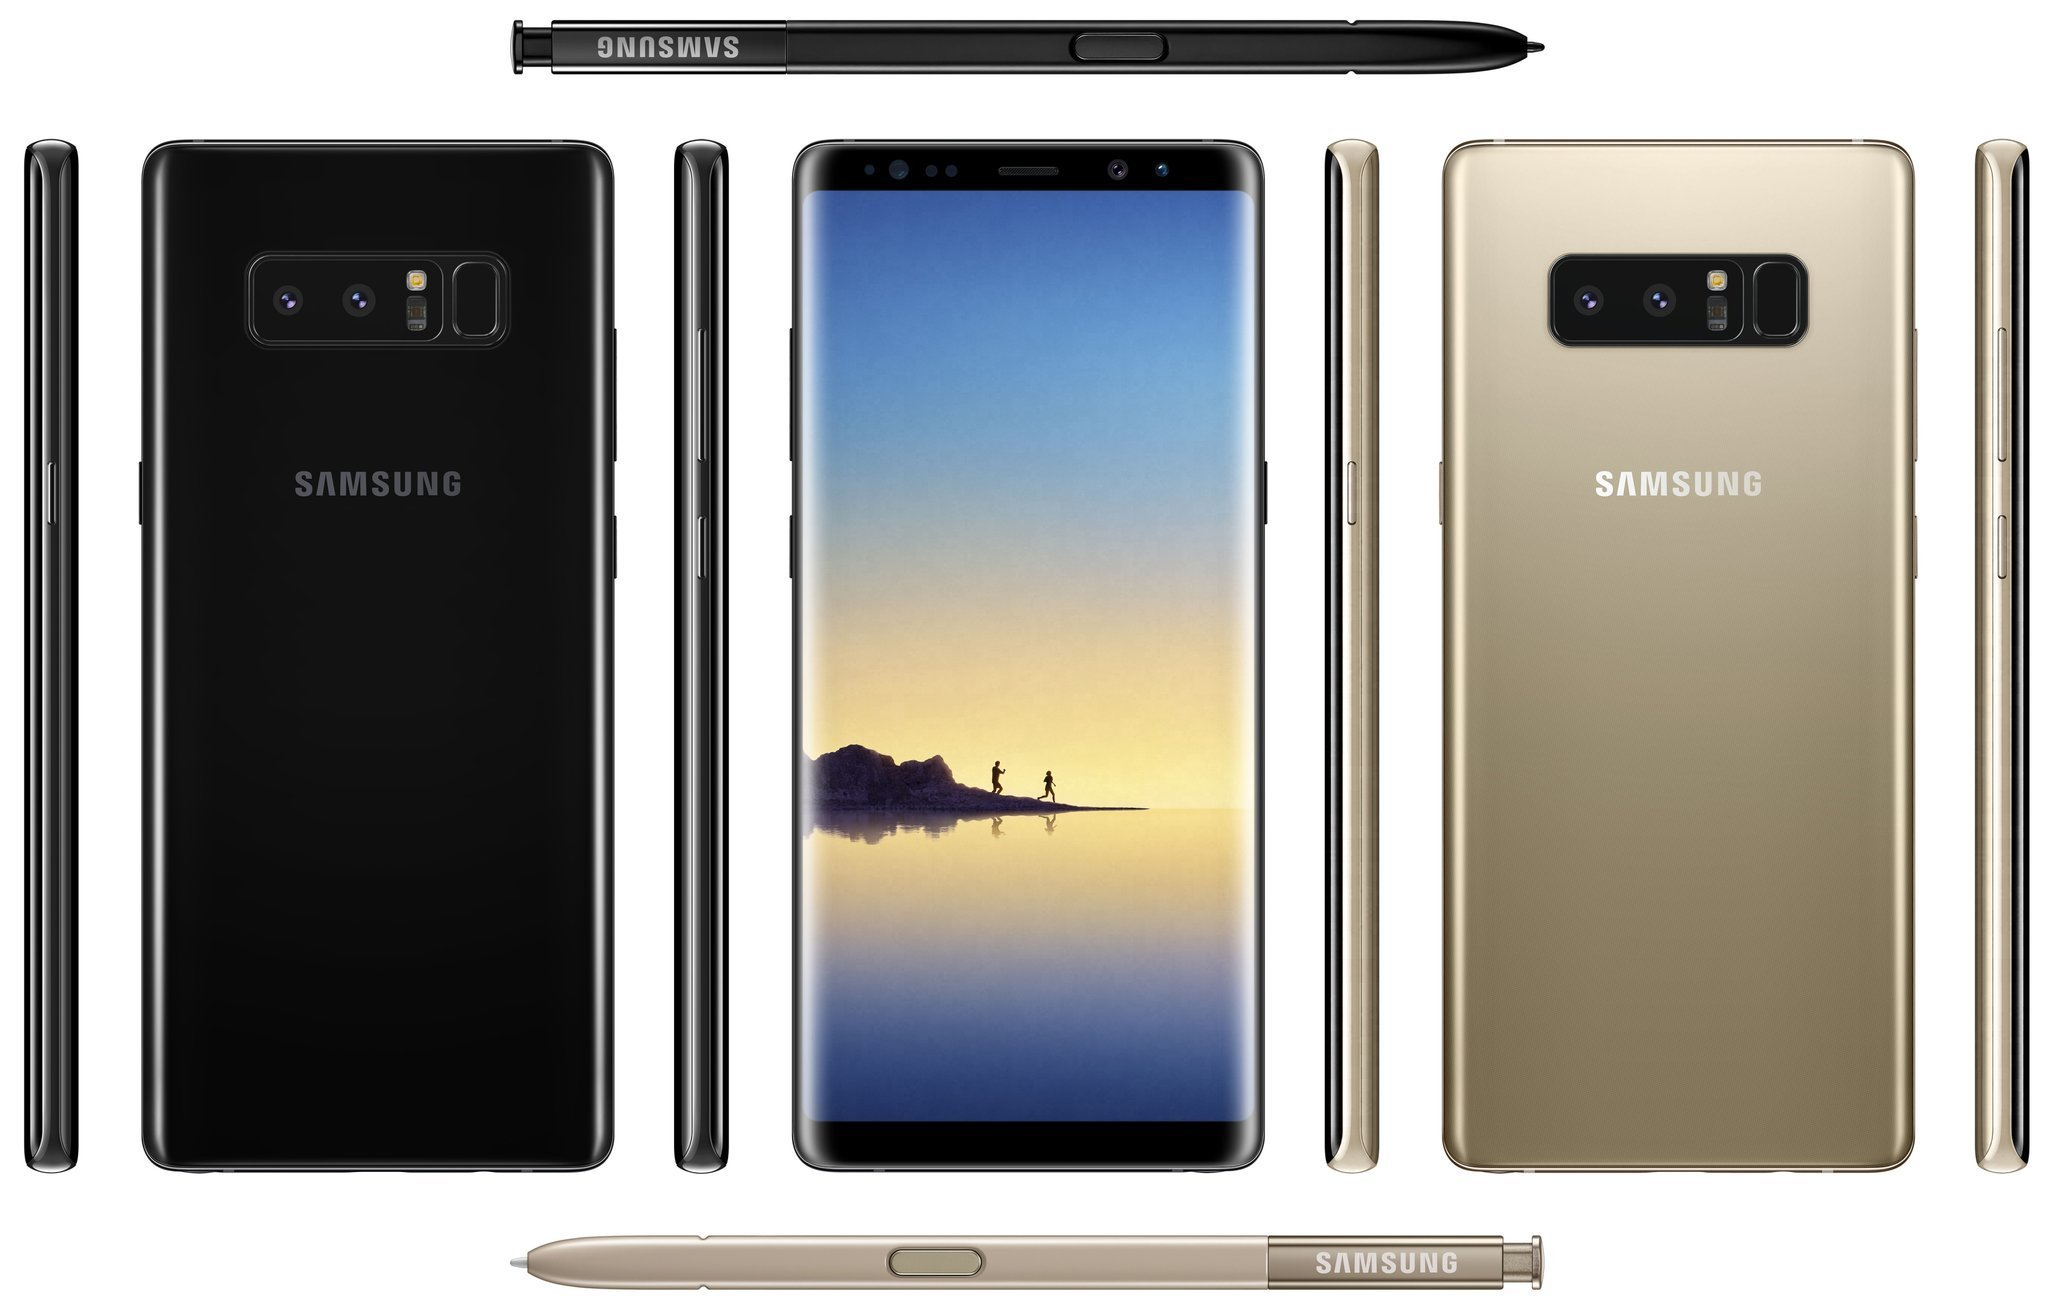 Voici l'image officielle du Samsung Galaxy Note 8